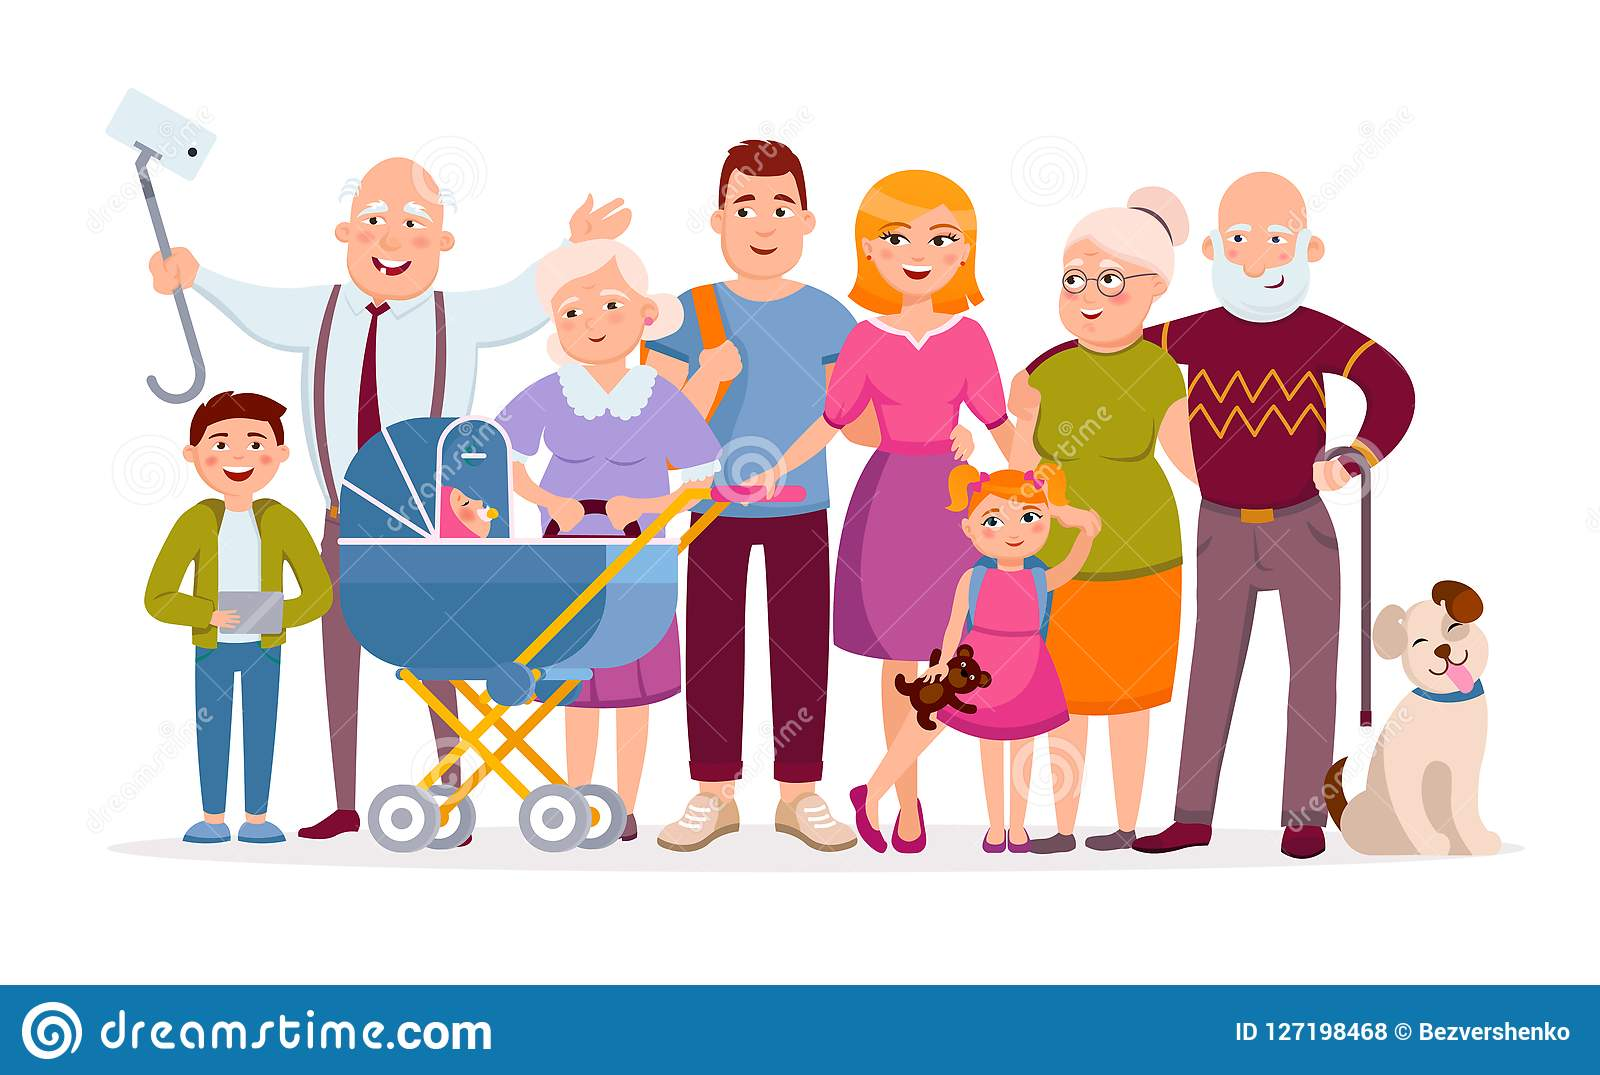 Big Family Standing Together As A Family Portrait Cartoon